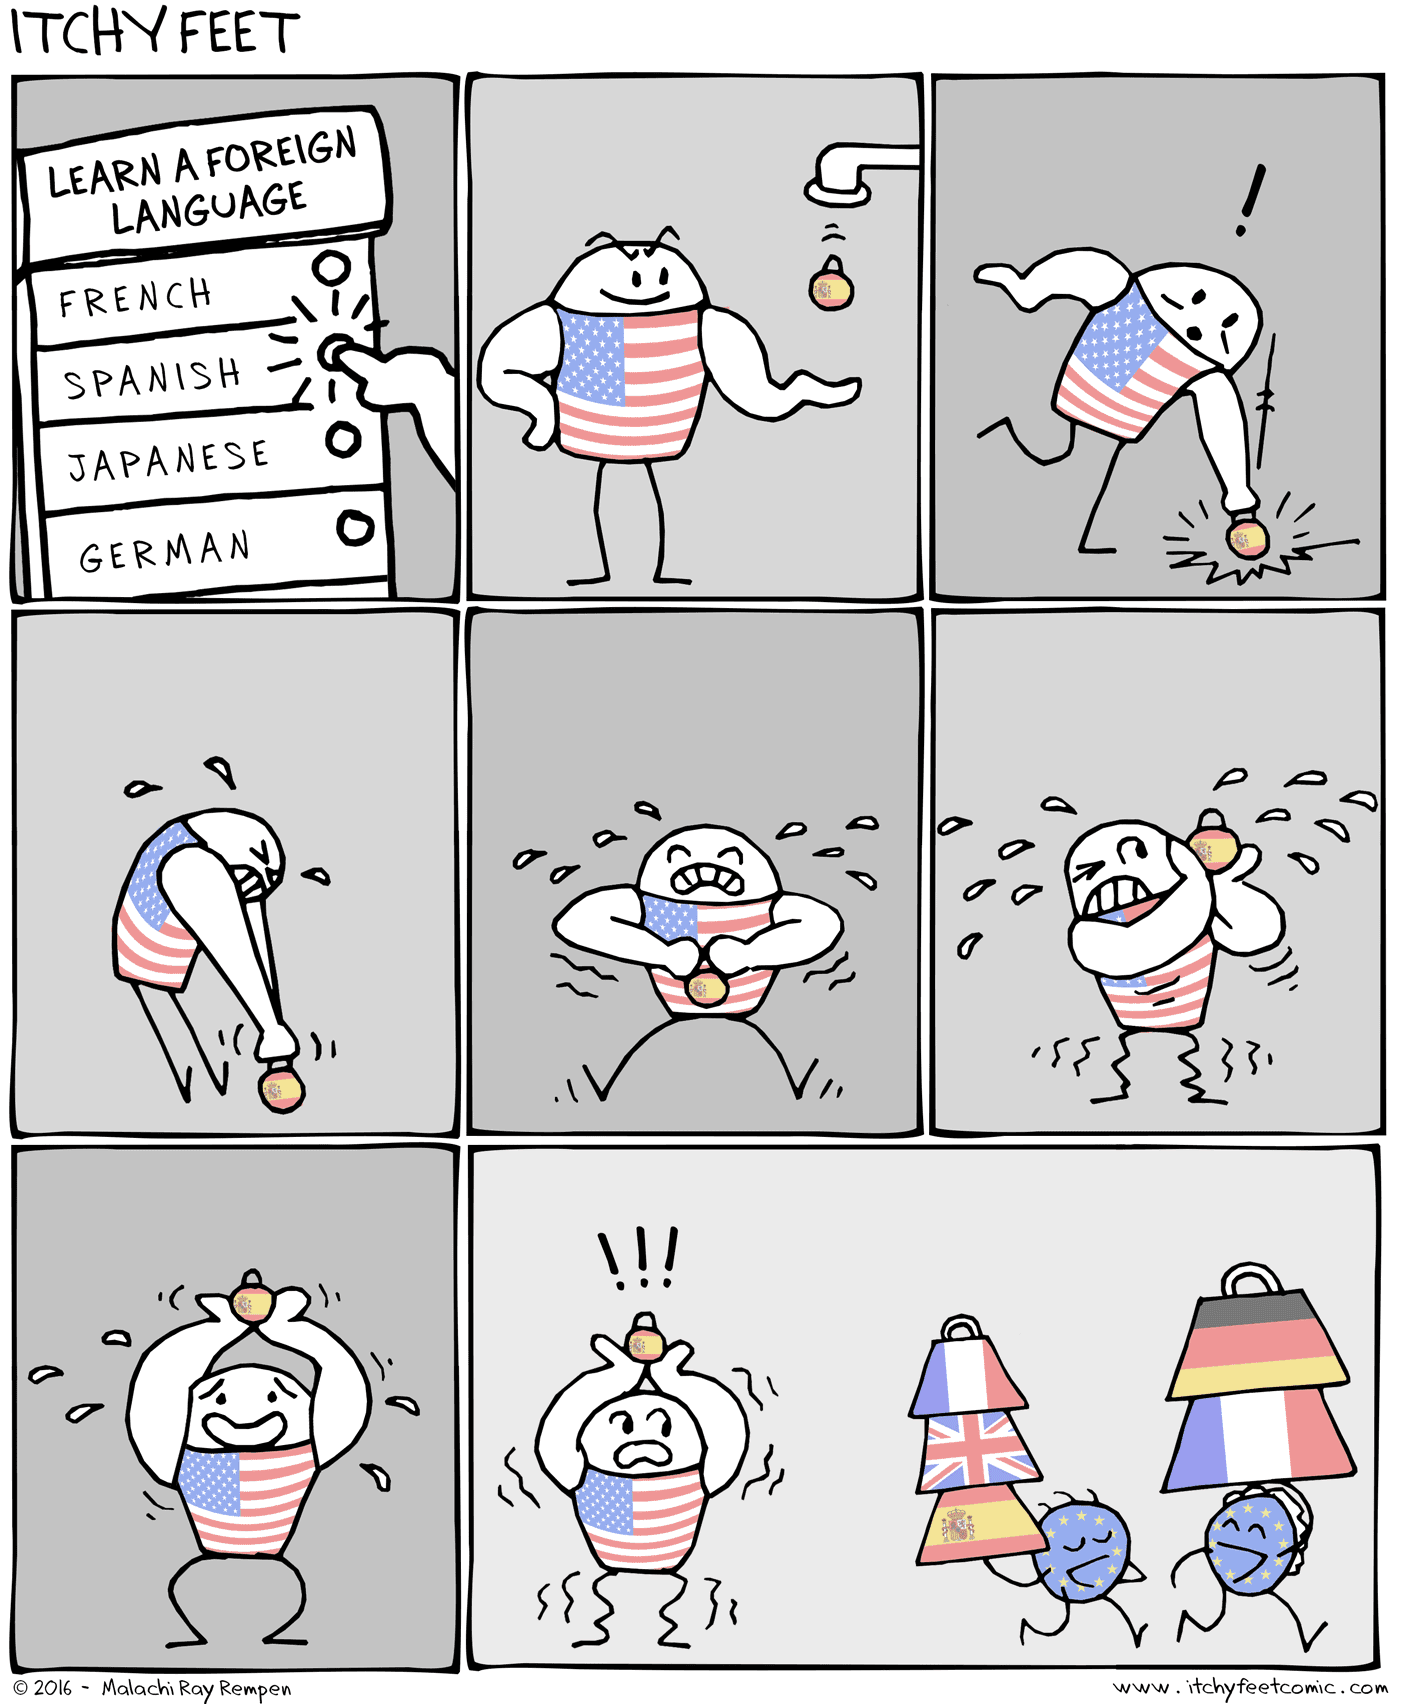 Learning a new language as an American is hard. Then, when you finally achieve it, you go to Europe and meet Europeans who speak several many a thousand languages. So unfair